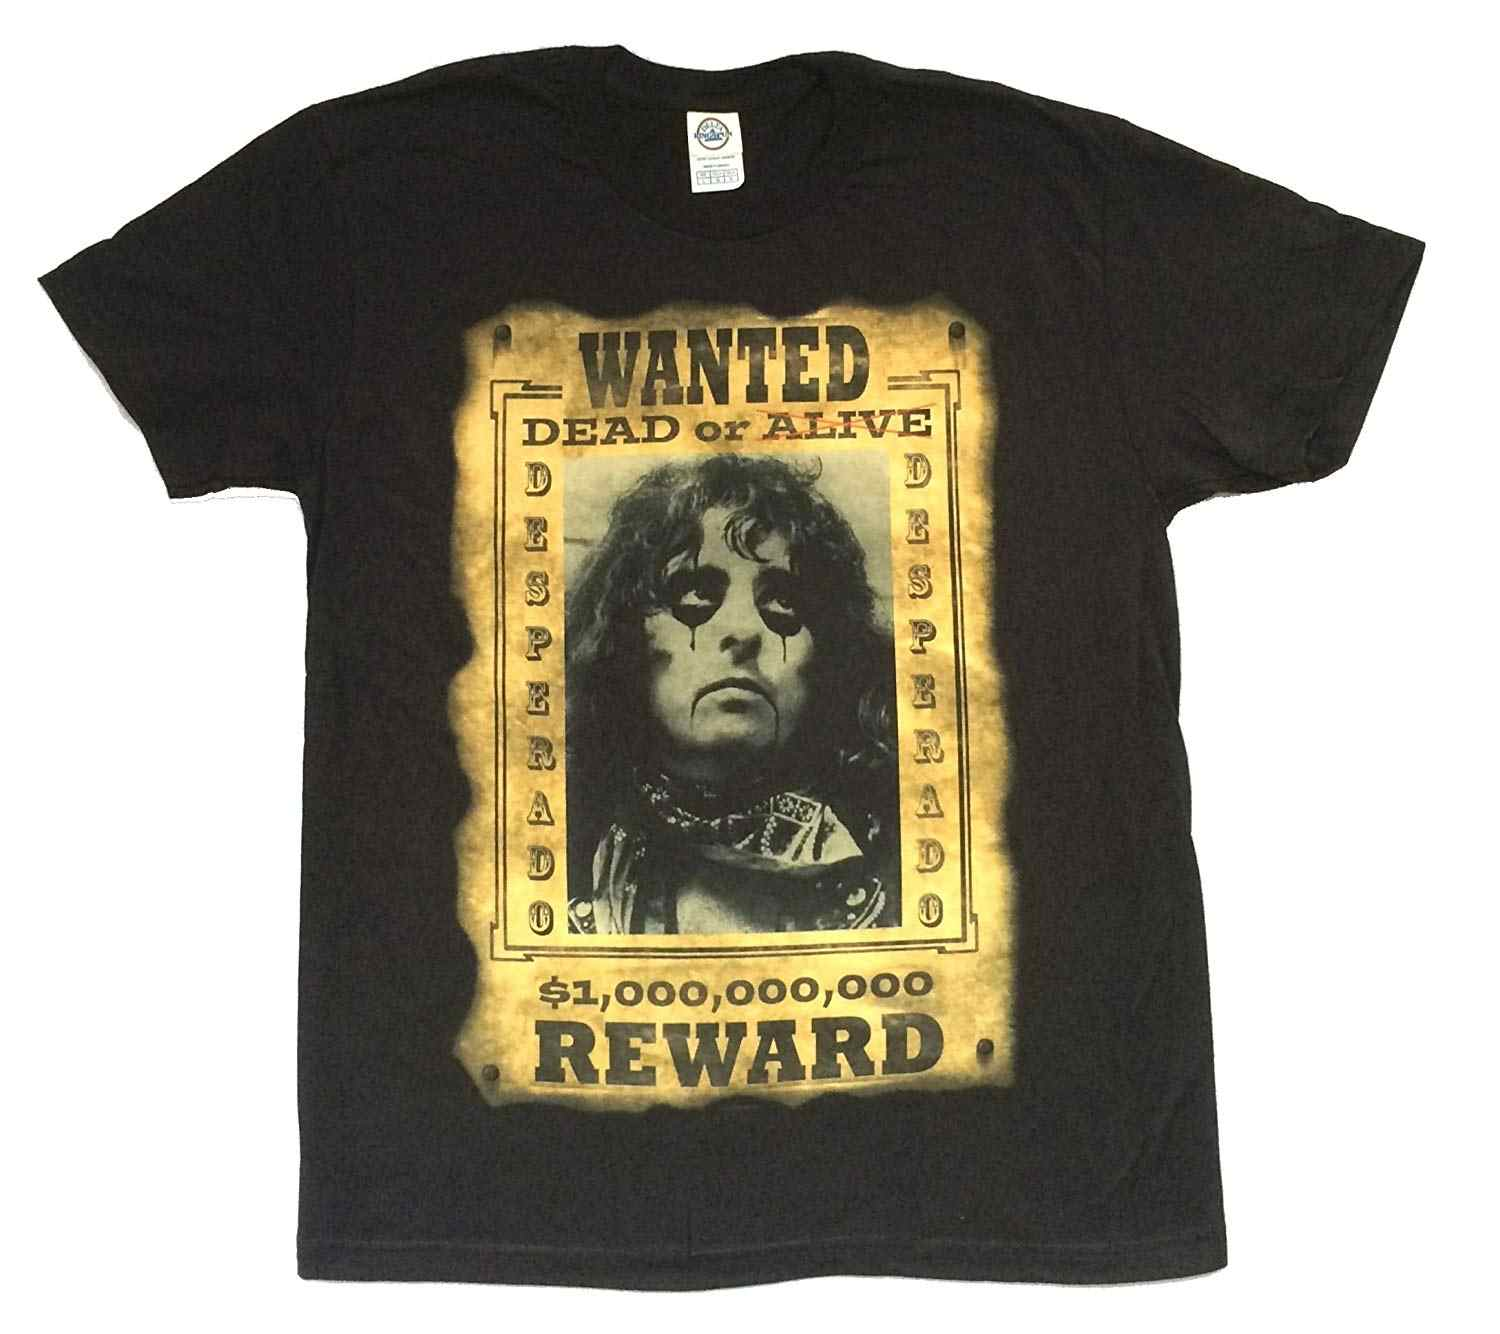 Alice Cooper Reward Wanted Dead Or Alive Poster Image Black T ShirtRound Neck T-Shirts